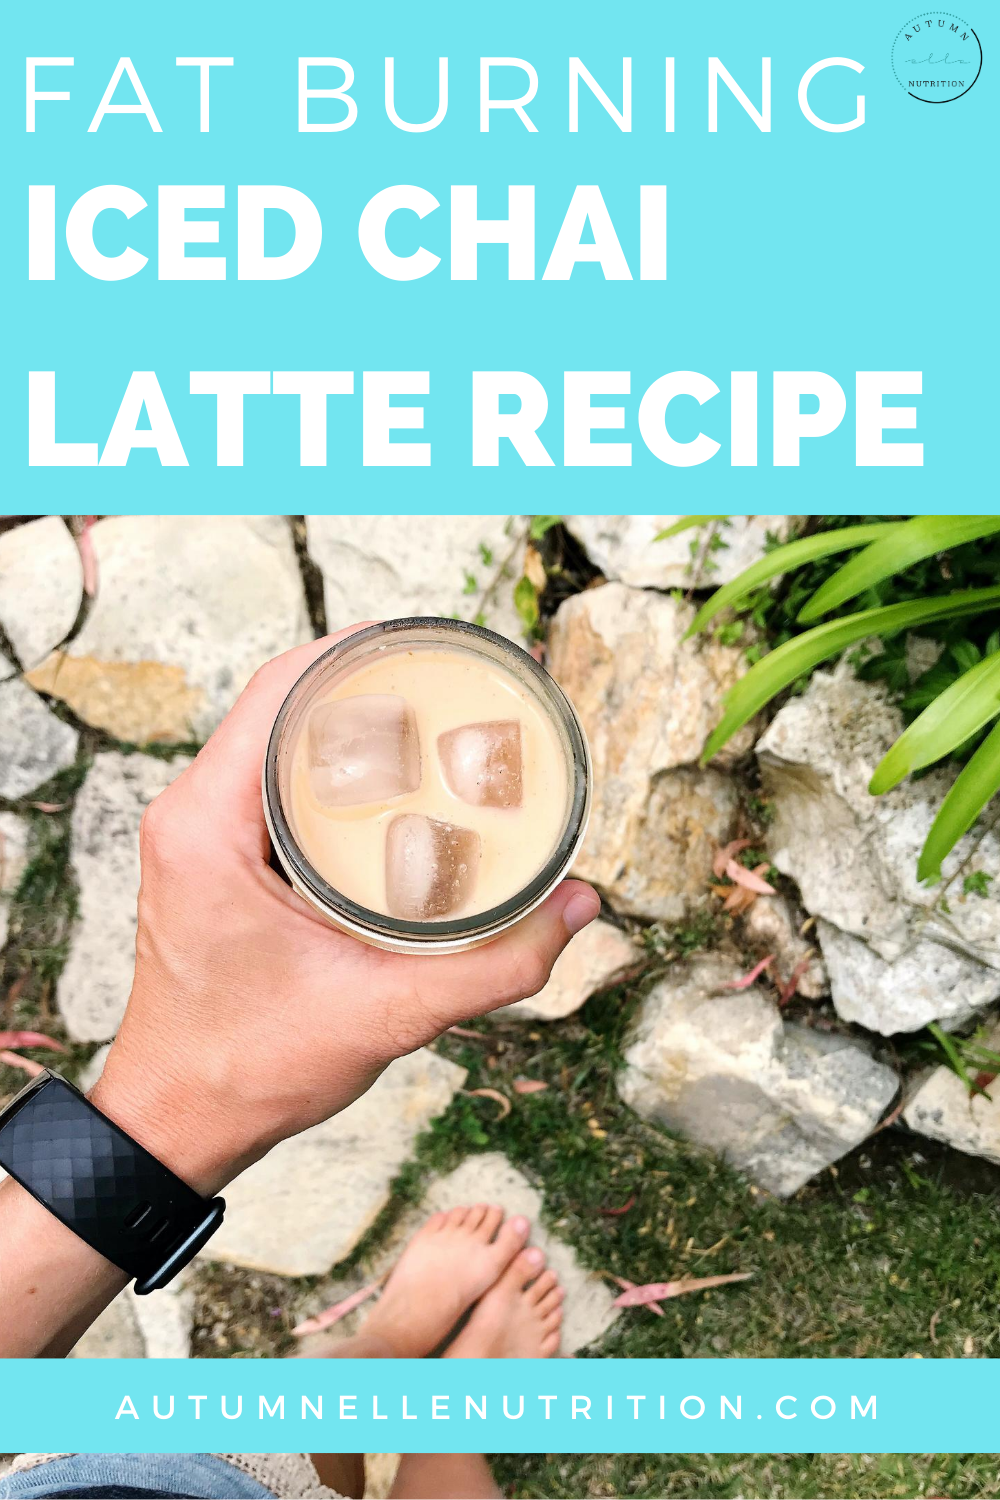 Fat Burning Iced Chai Latte Recipe